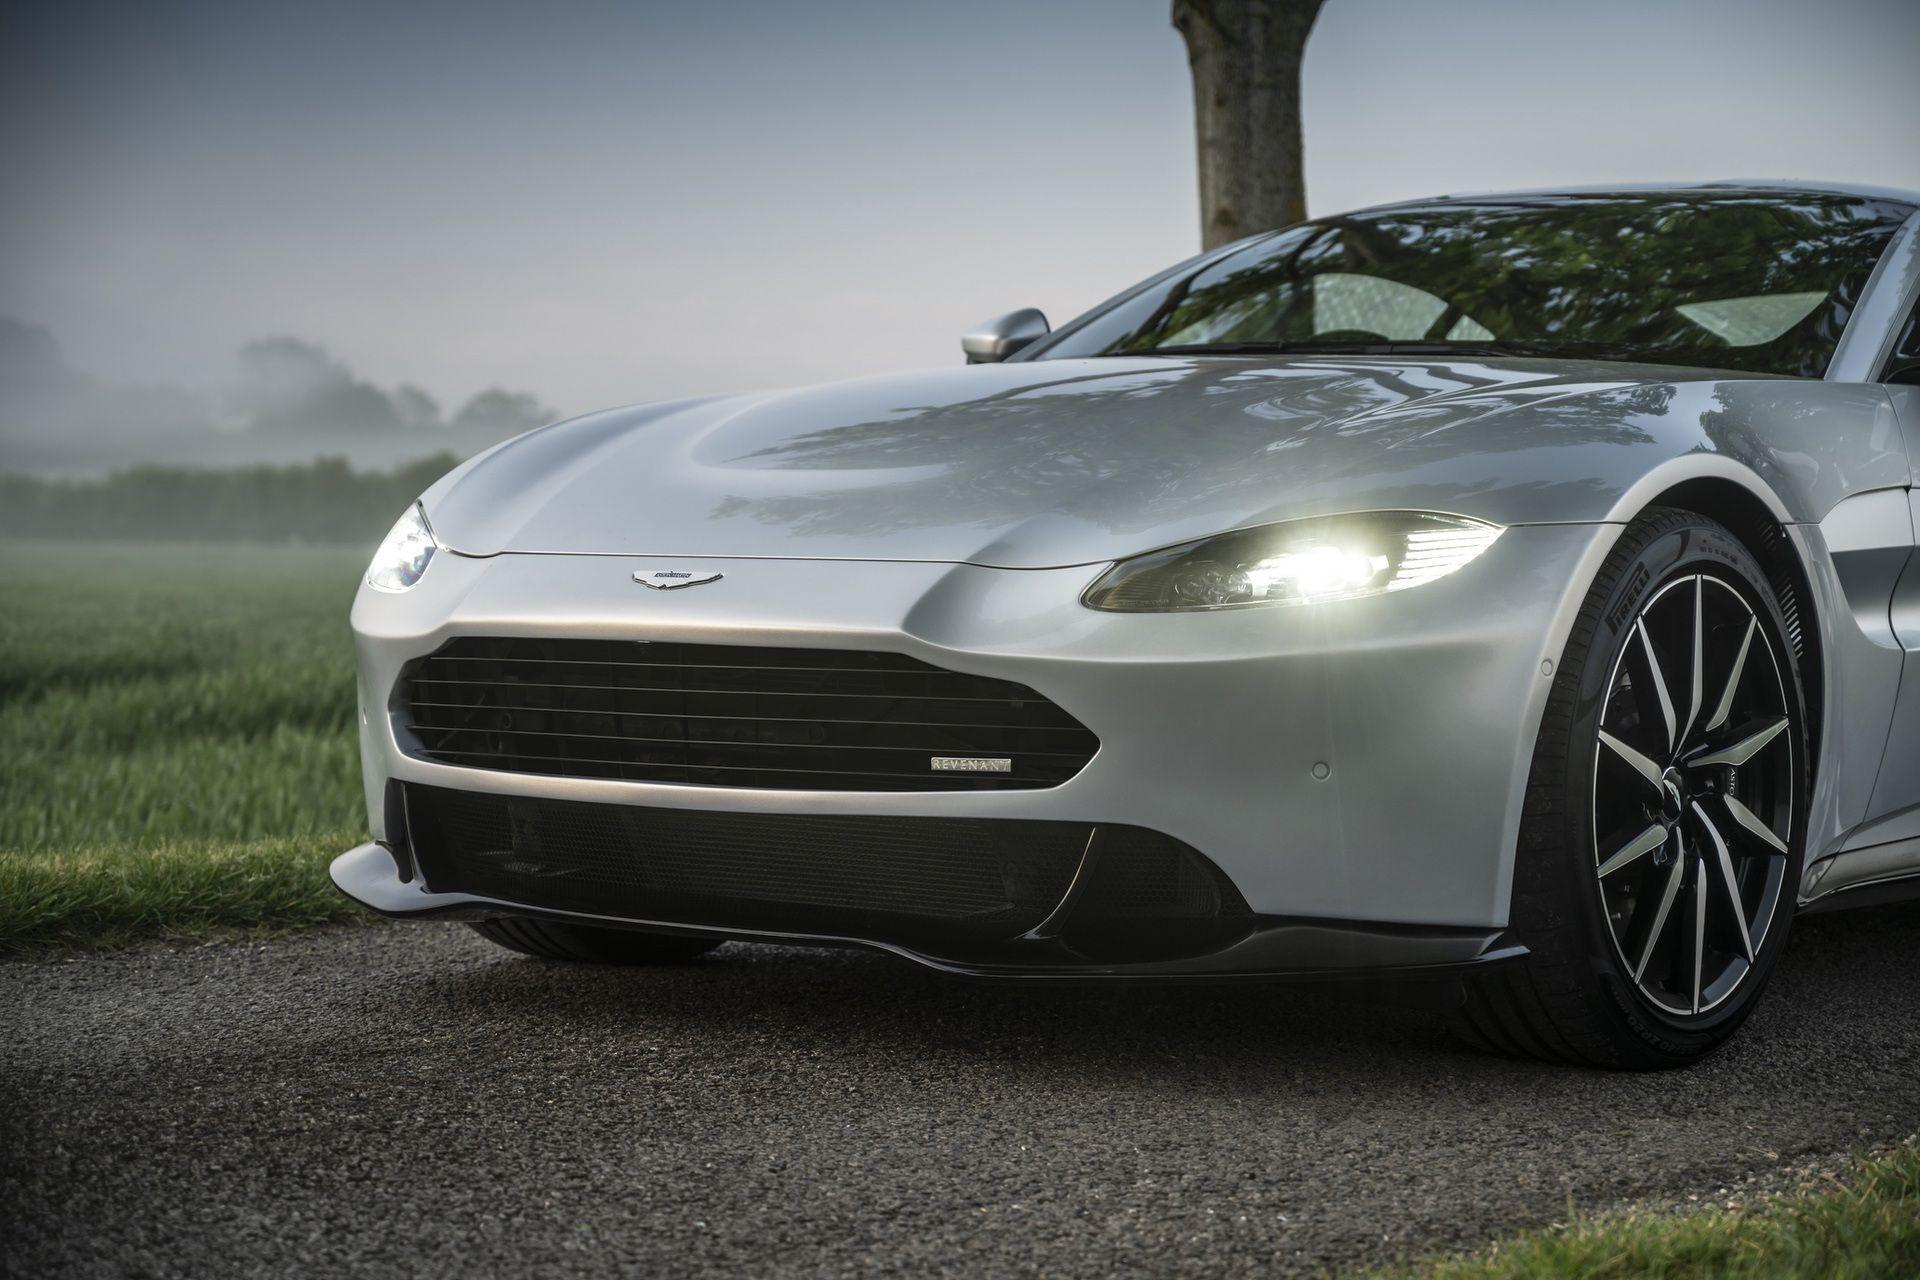 1.-Revenant-Automotive-Aston-Martin-Vantage-bumper-close-up